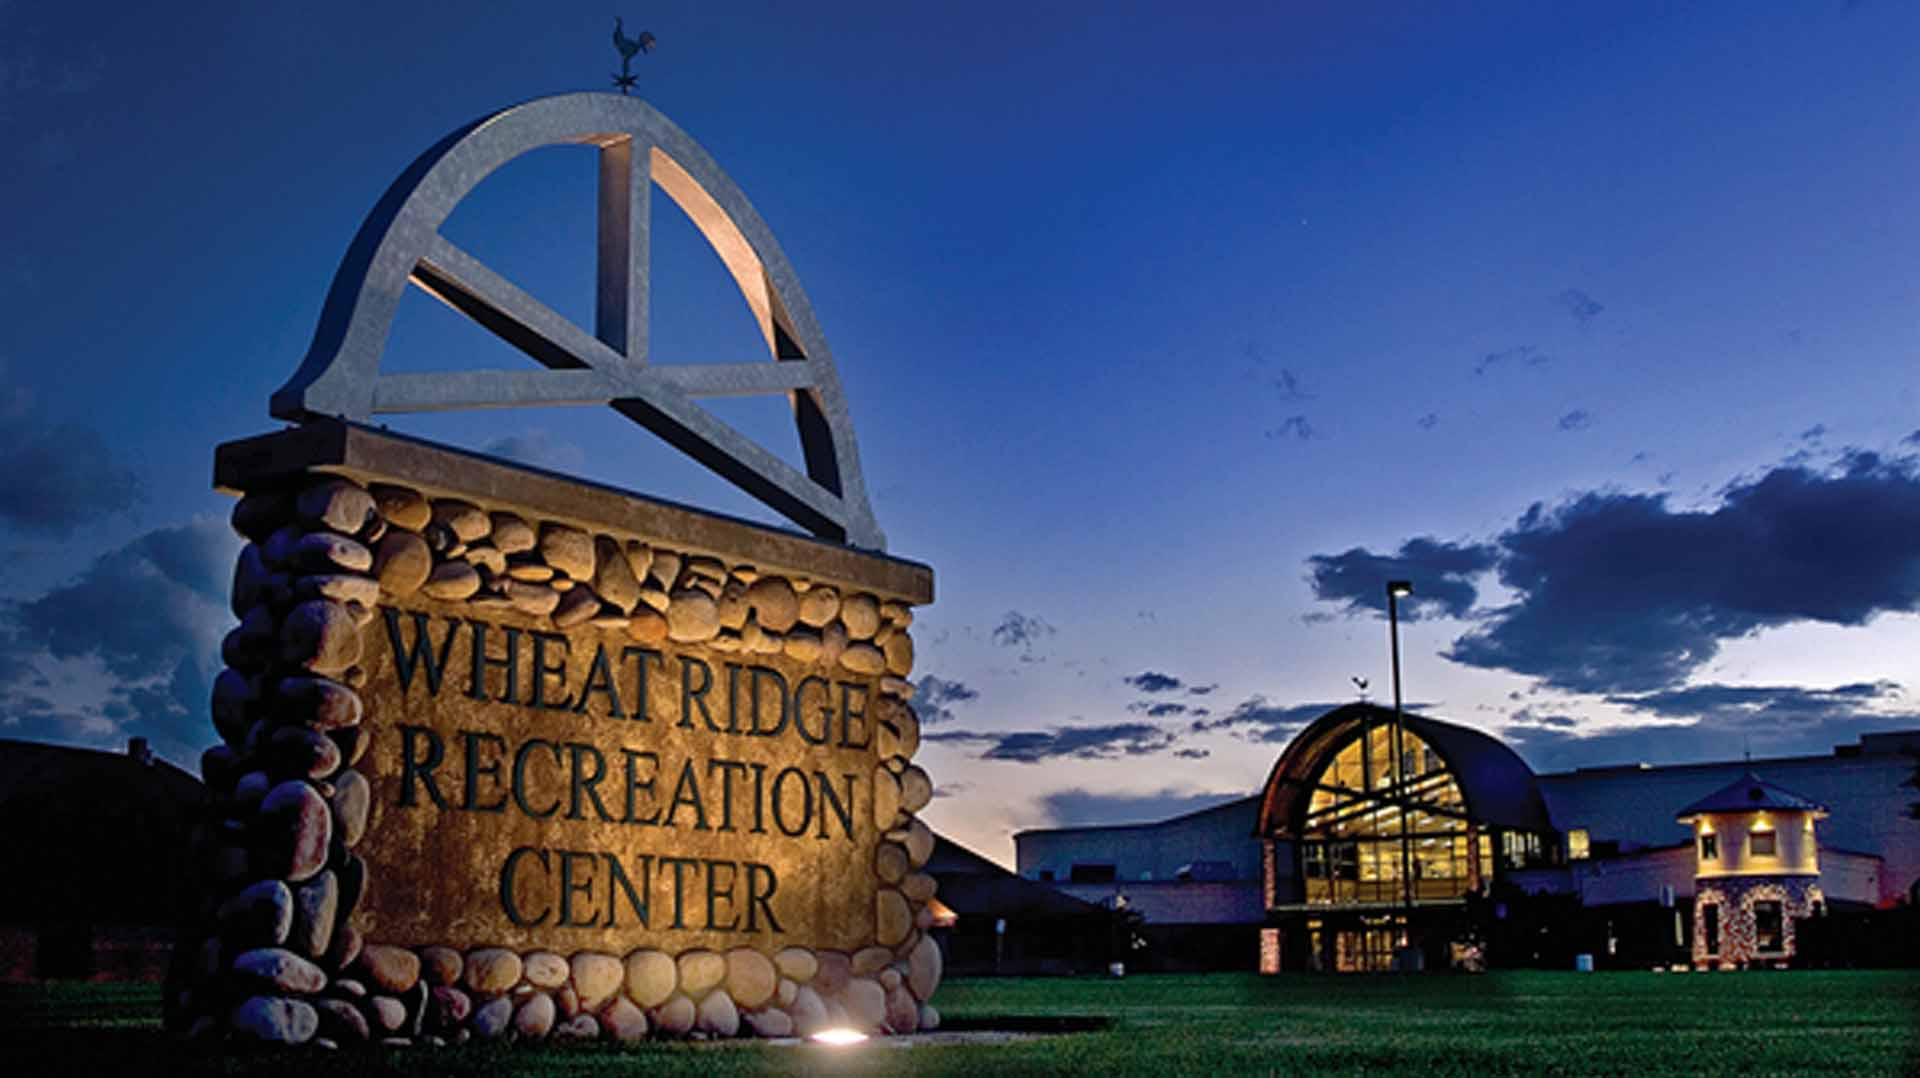 Wheat Ridge Recreation Center exterior at night